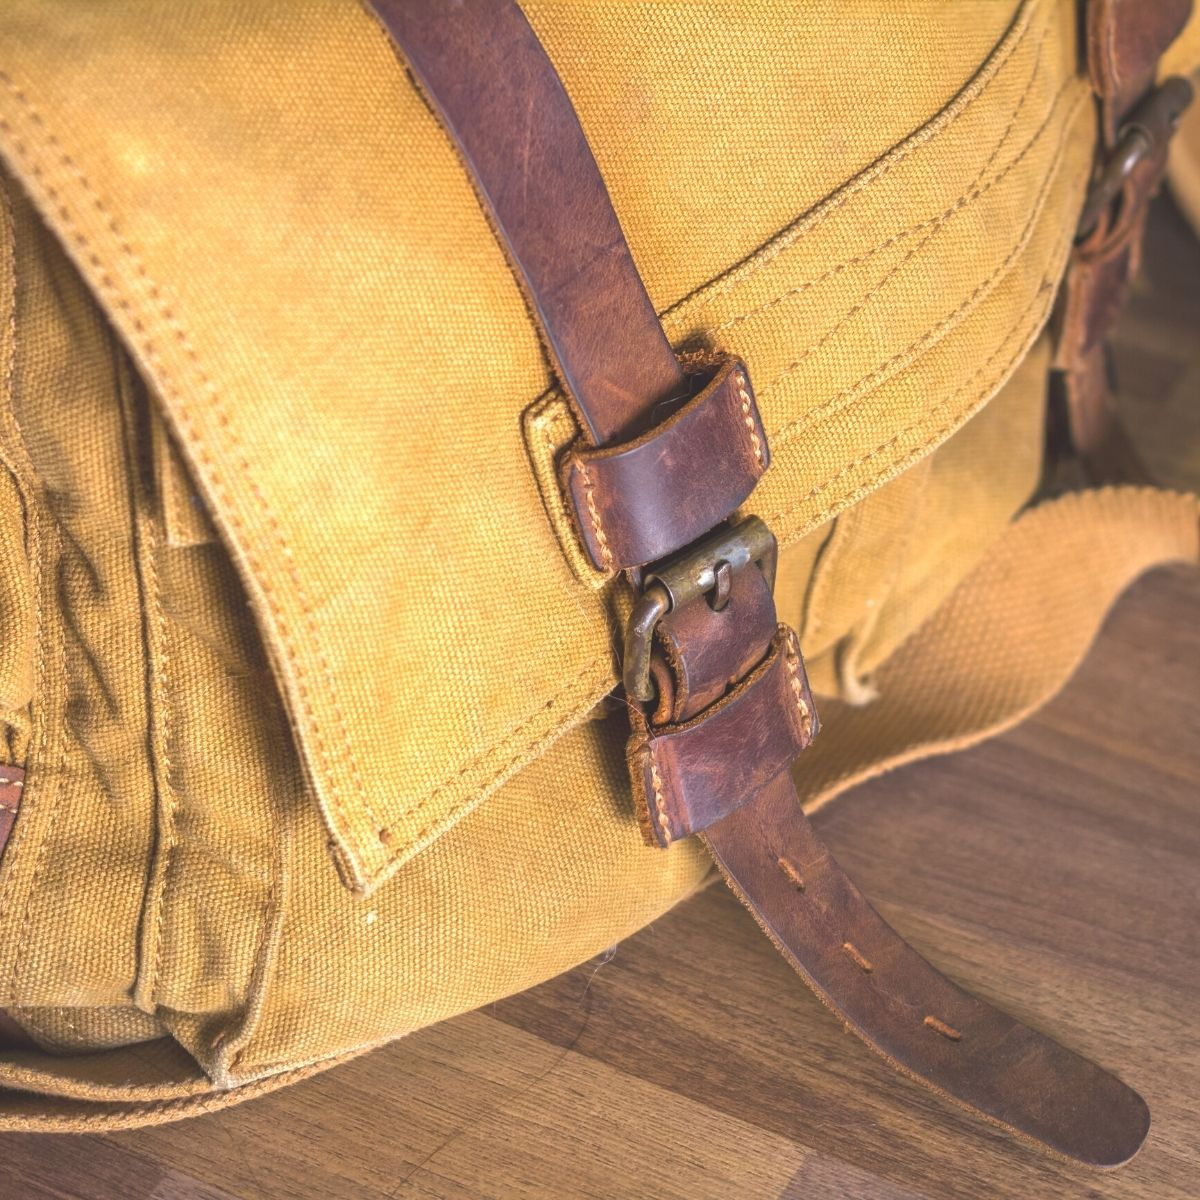 a mustard yellow waxed canvas bag with dark brown leather straps is sitting on a wooden table. The picture shows only the left corner front of the bag.